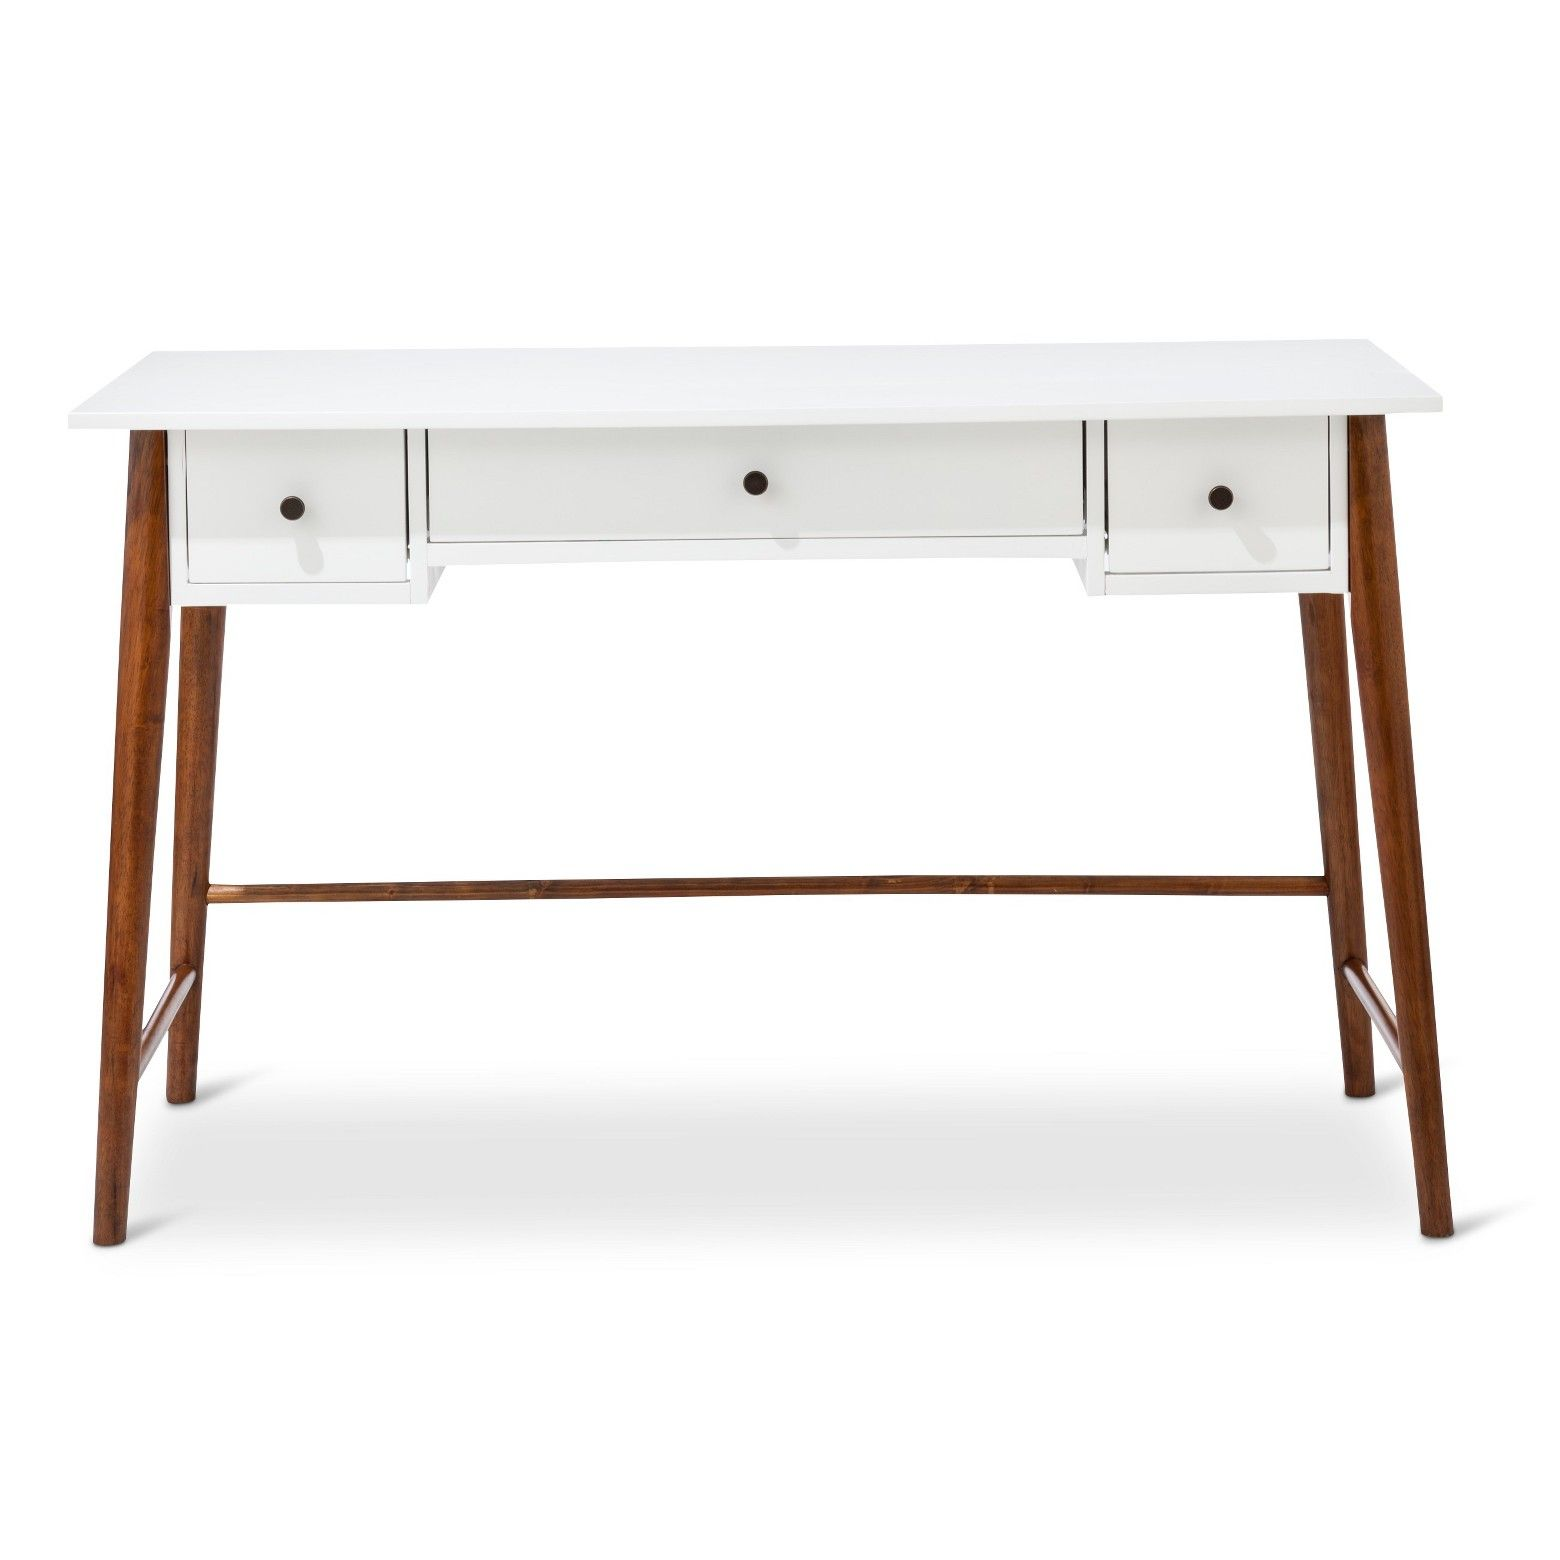 Amherst Wood Writing Desk With Drawers White Project 62 Writing Desk With Drawers Desk With Drawers Writing Desk